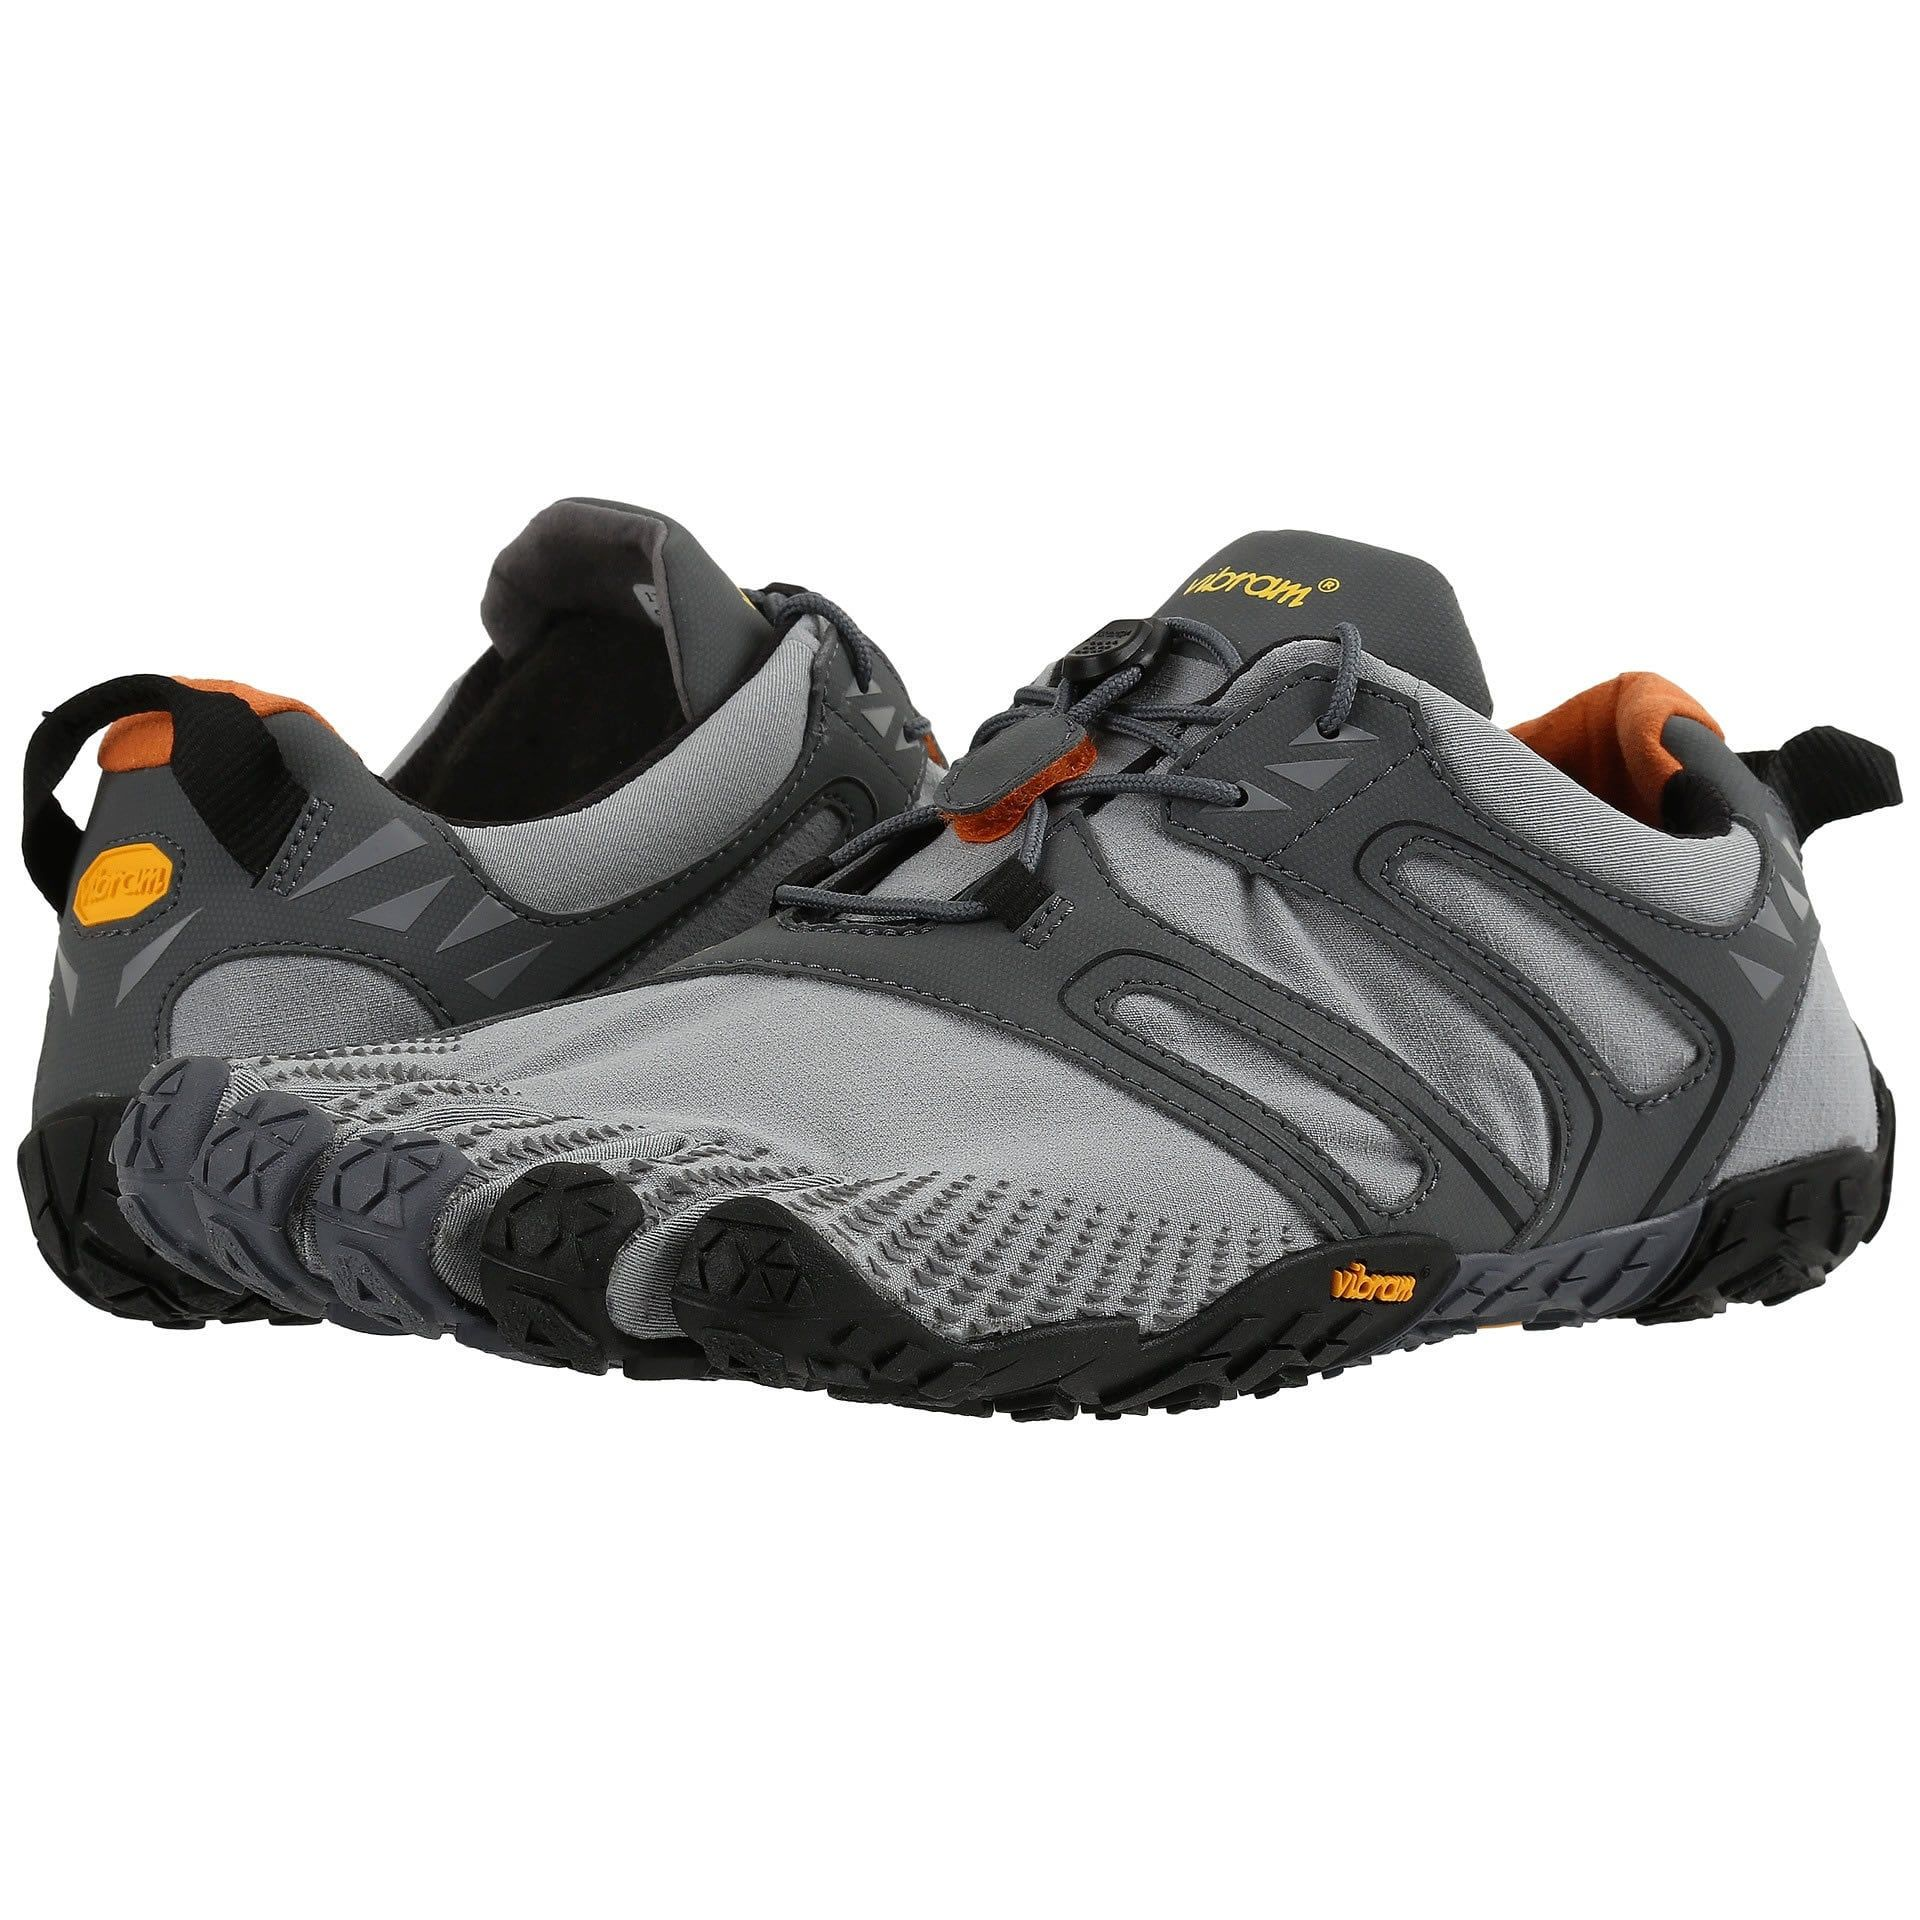 The V-Trail from Vibram® FiveFingers is ready for any adventure down any  path! This style is an updated version of the Spyridon MR / Elite shoe.